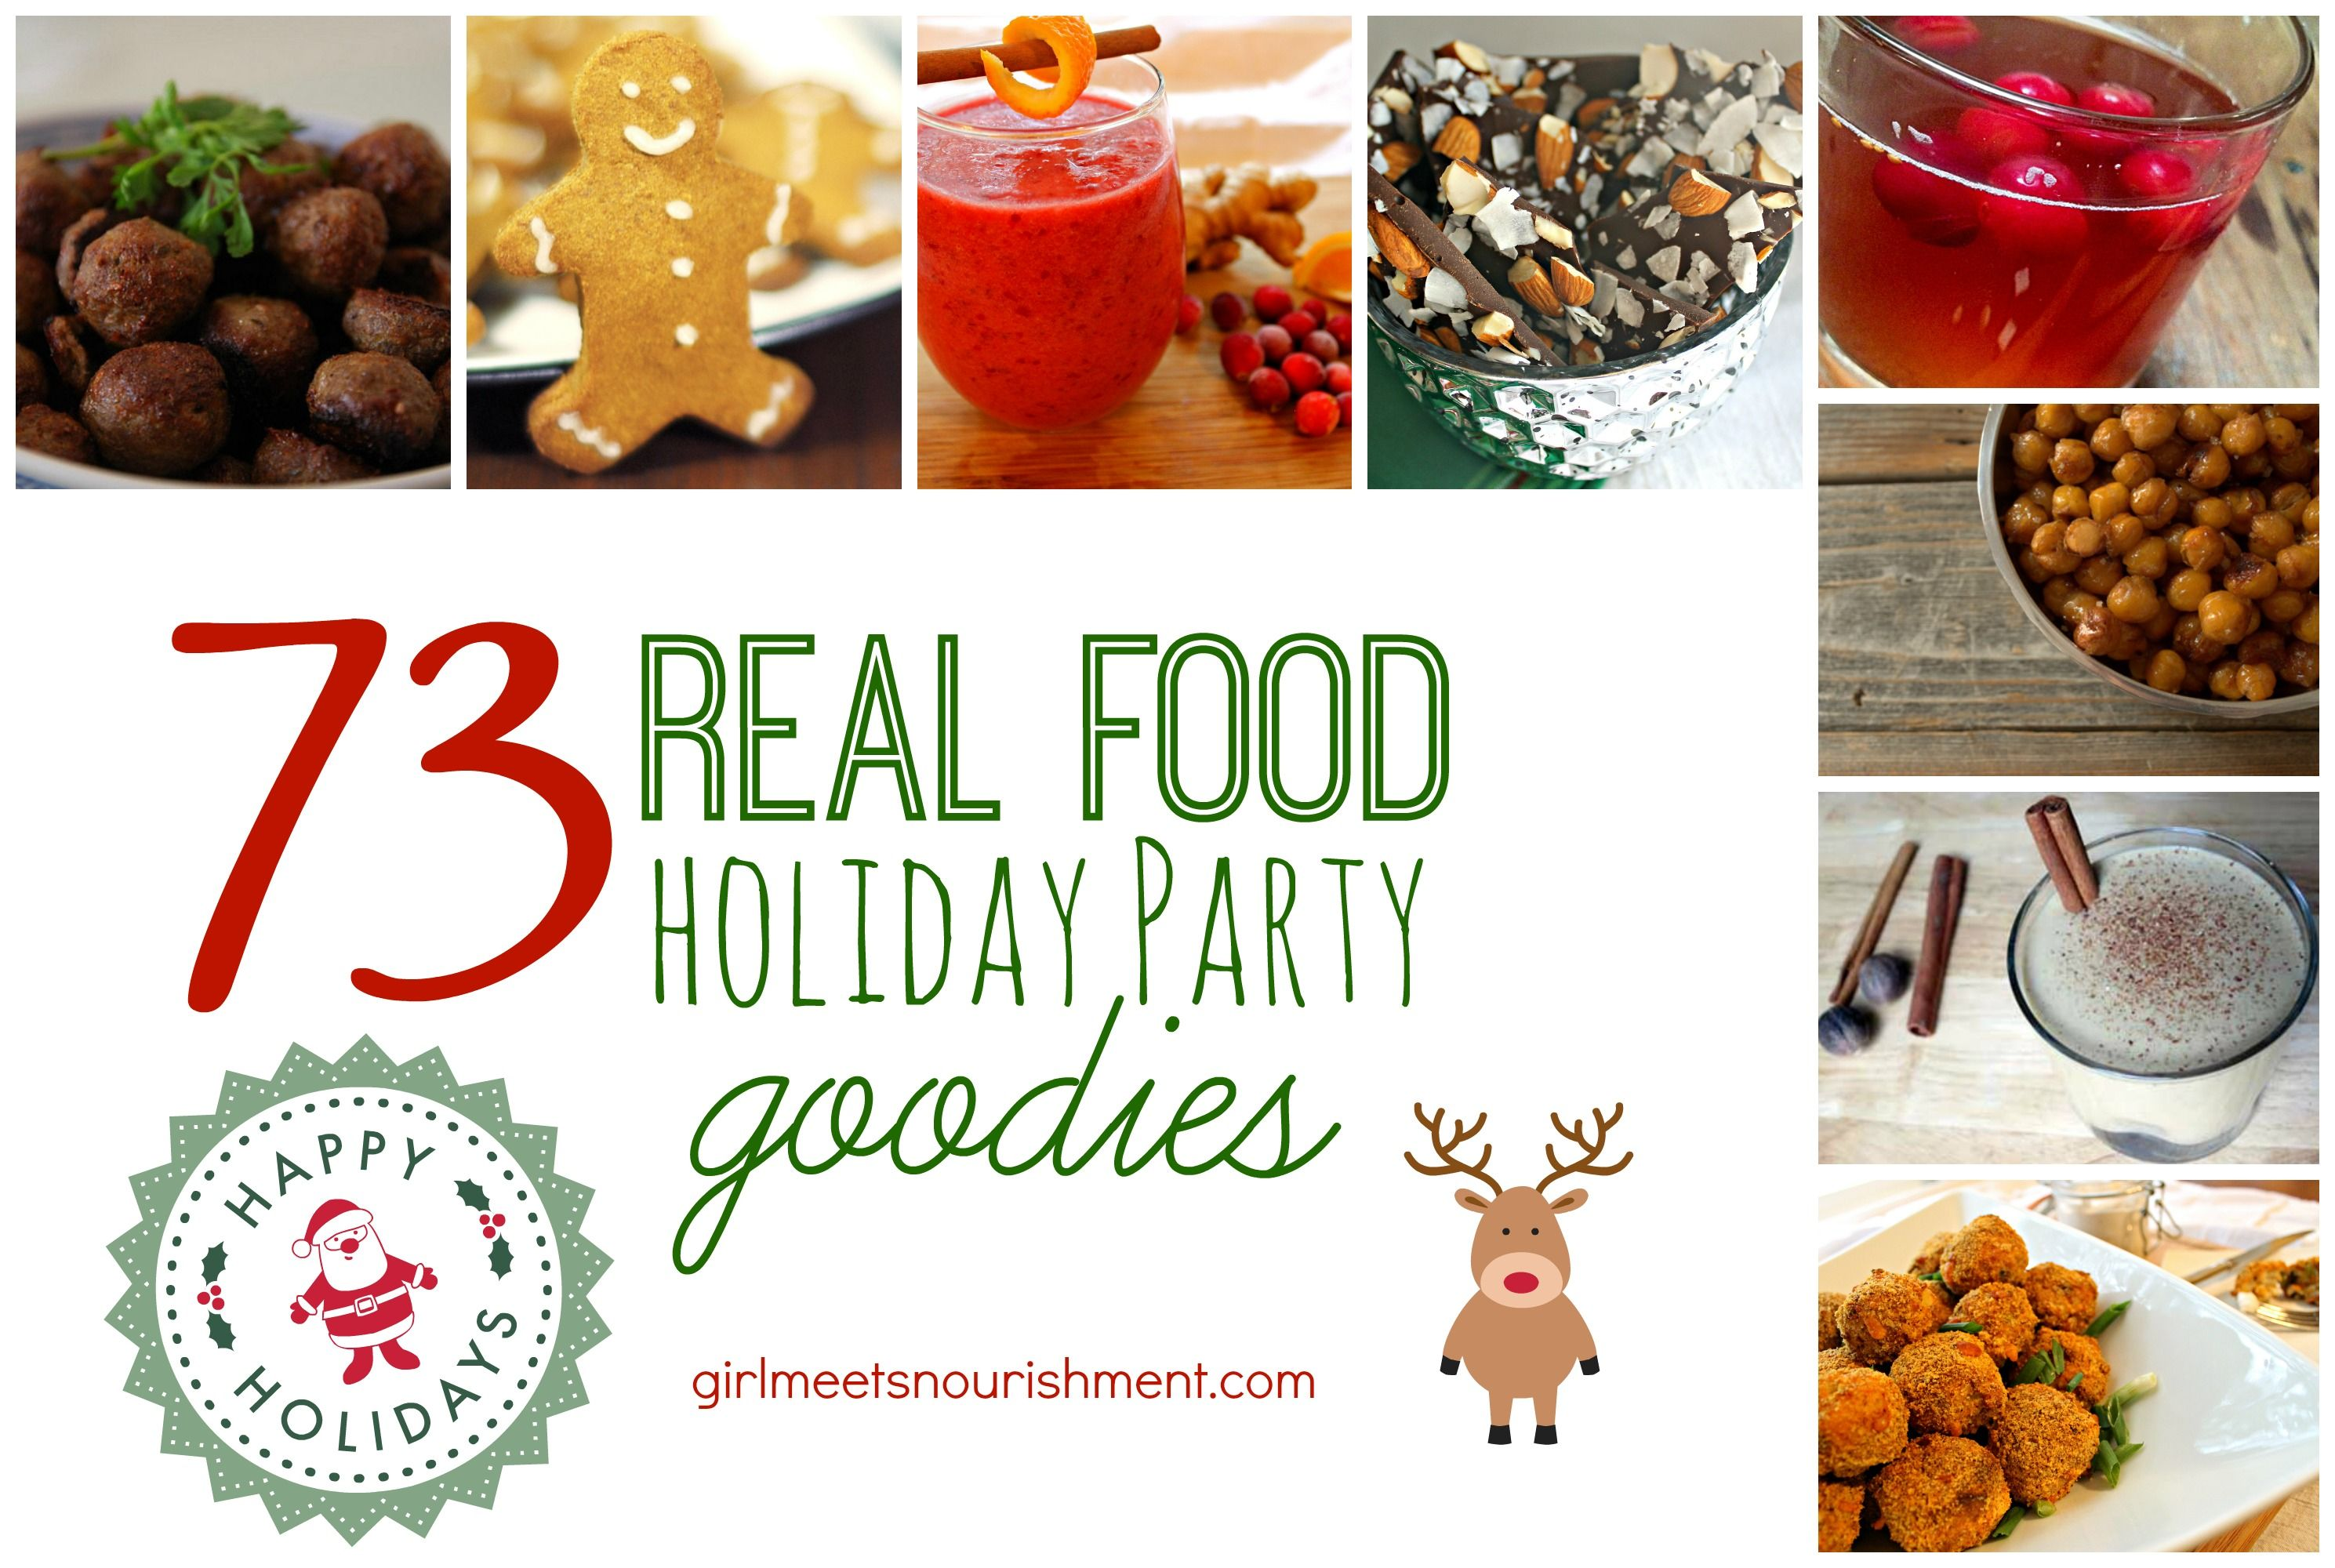 73 Real Food Holiday Party Goodies